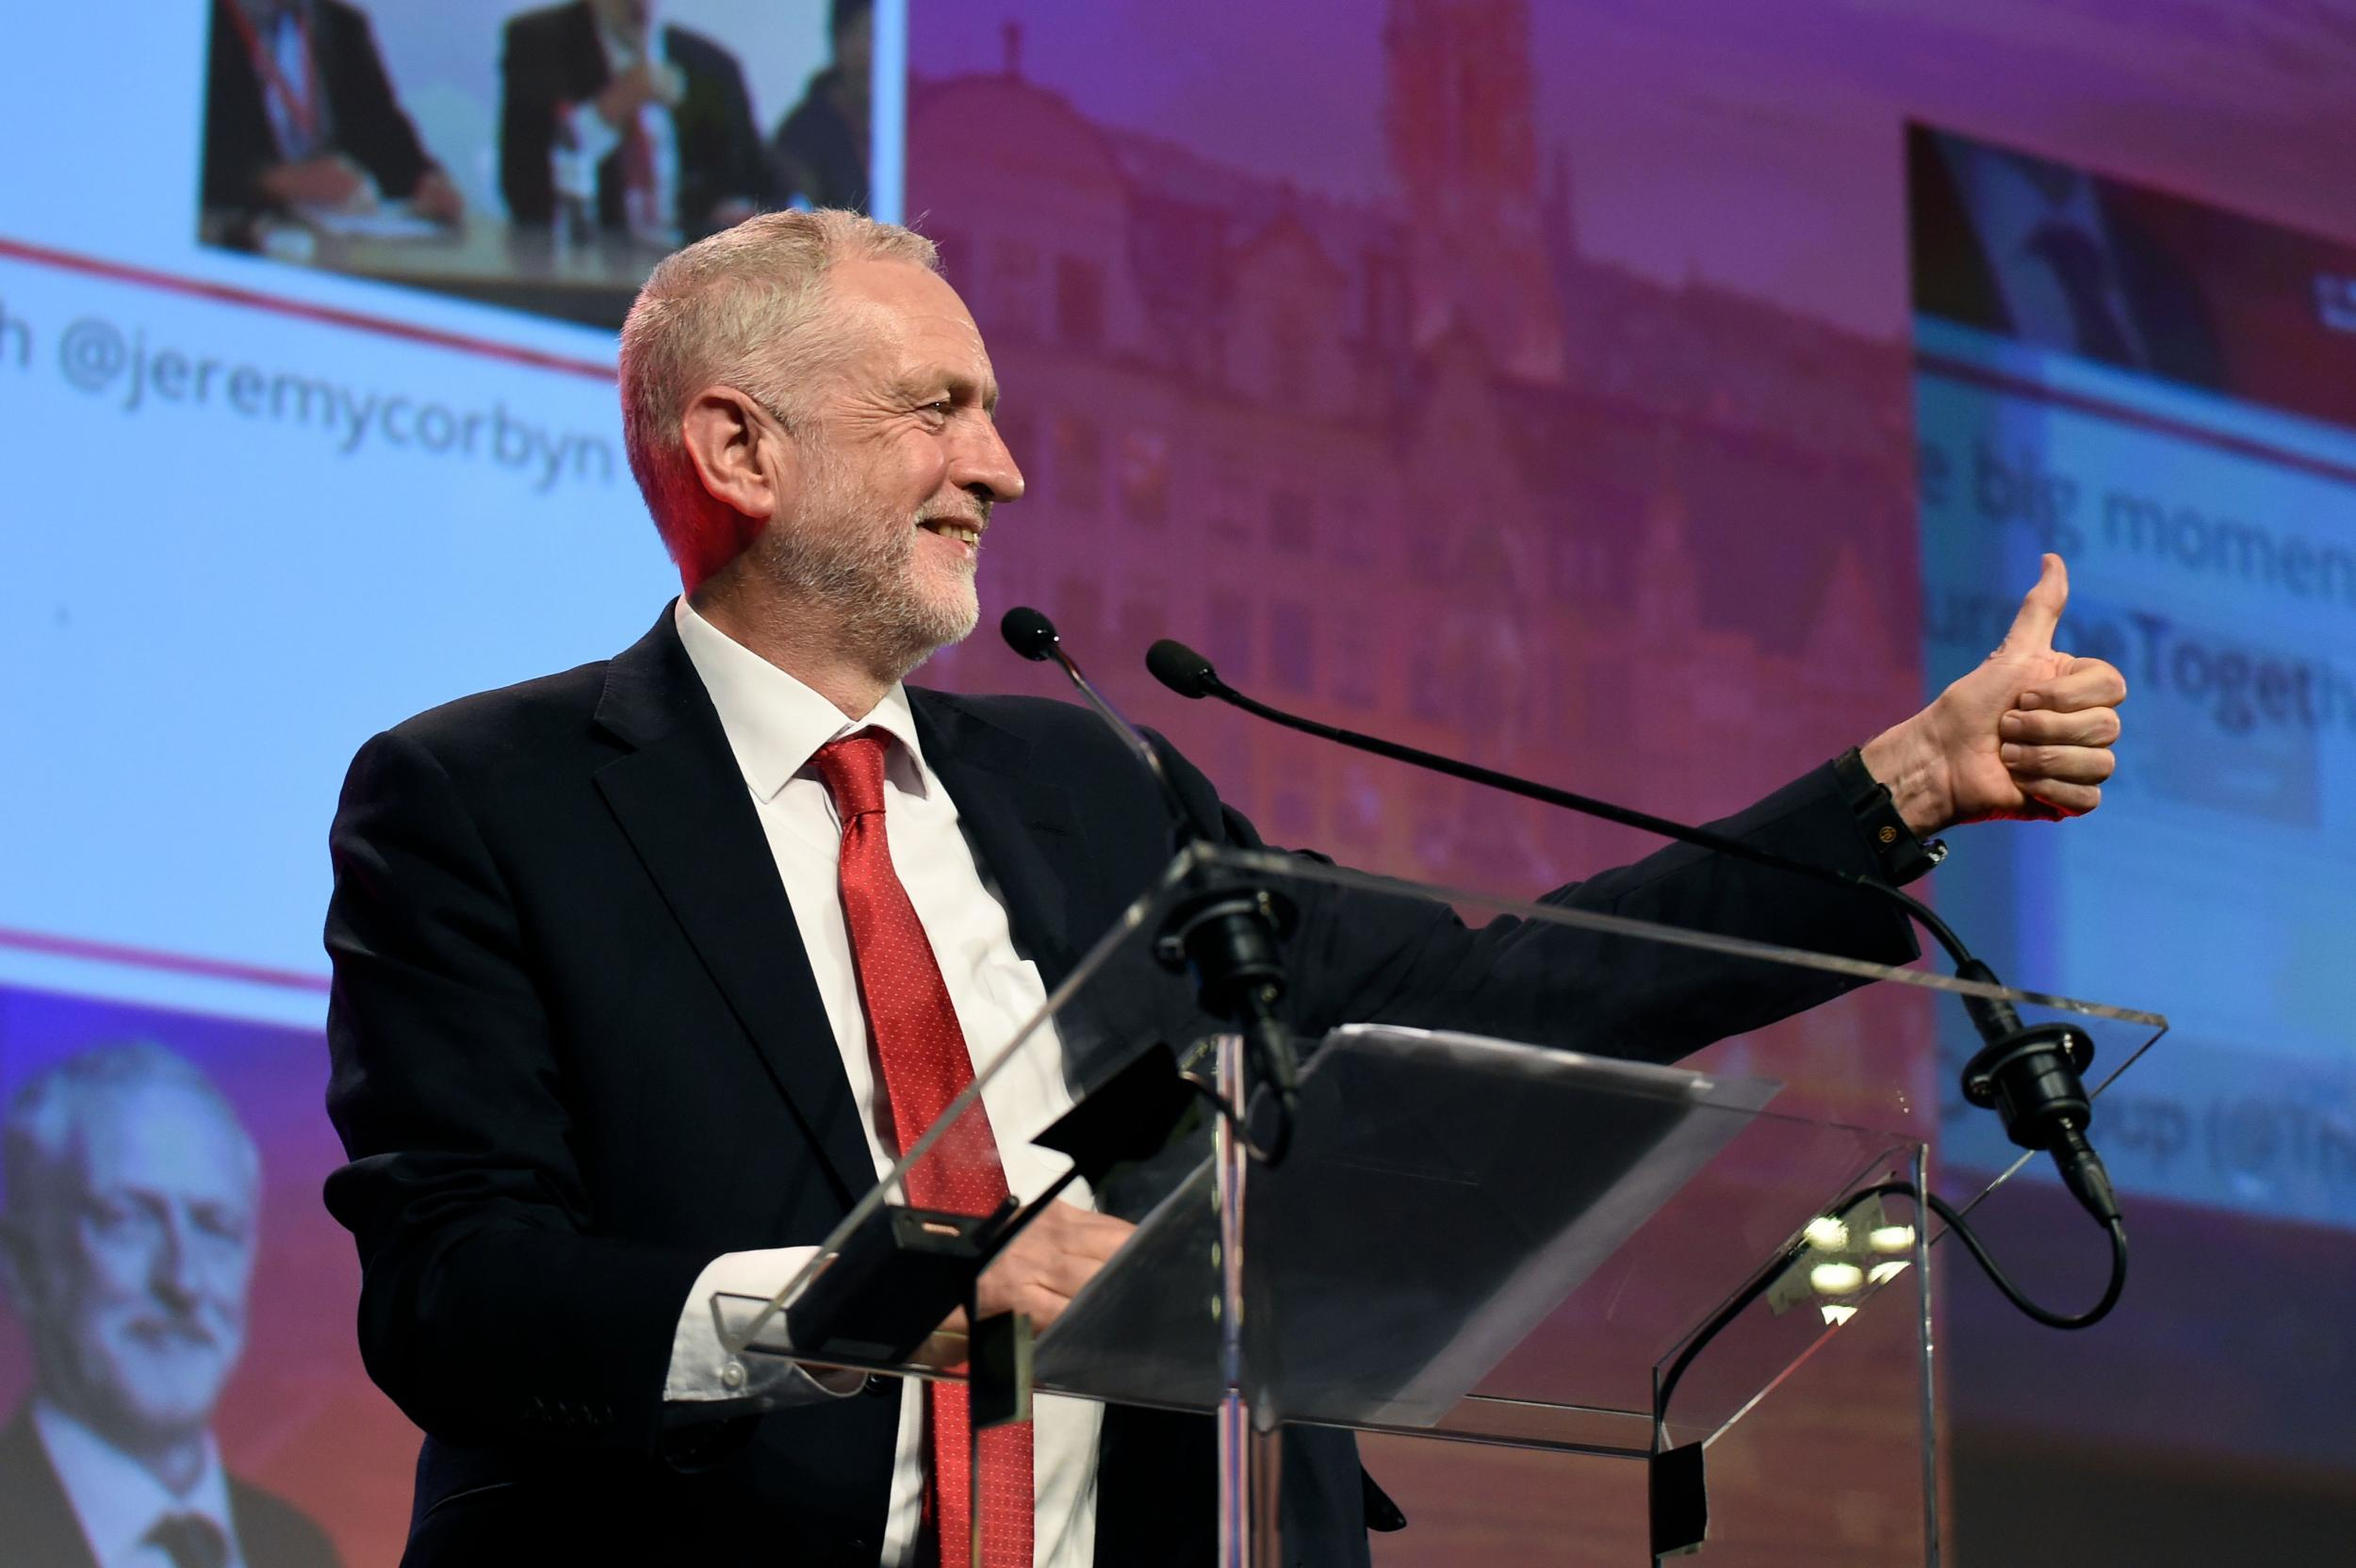 Ditch neoliberalism to win again, Jeremy Corbyn tells Europe's centre-left parties